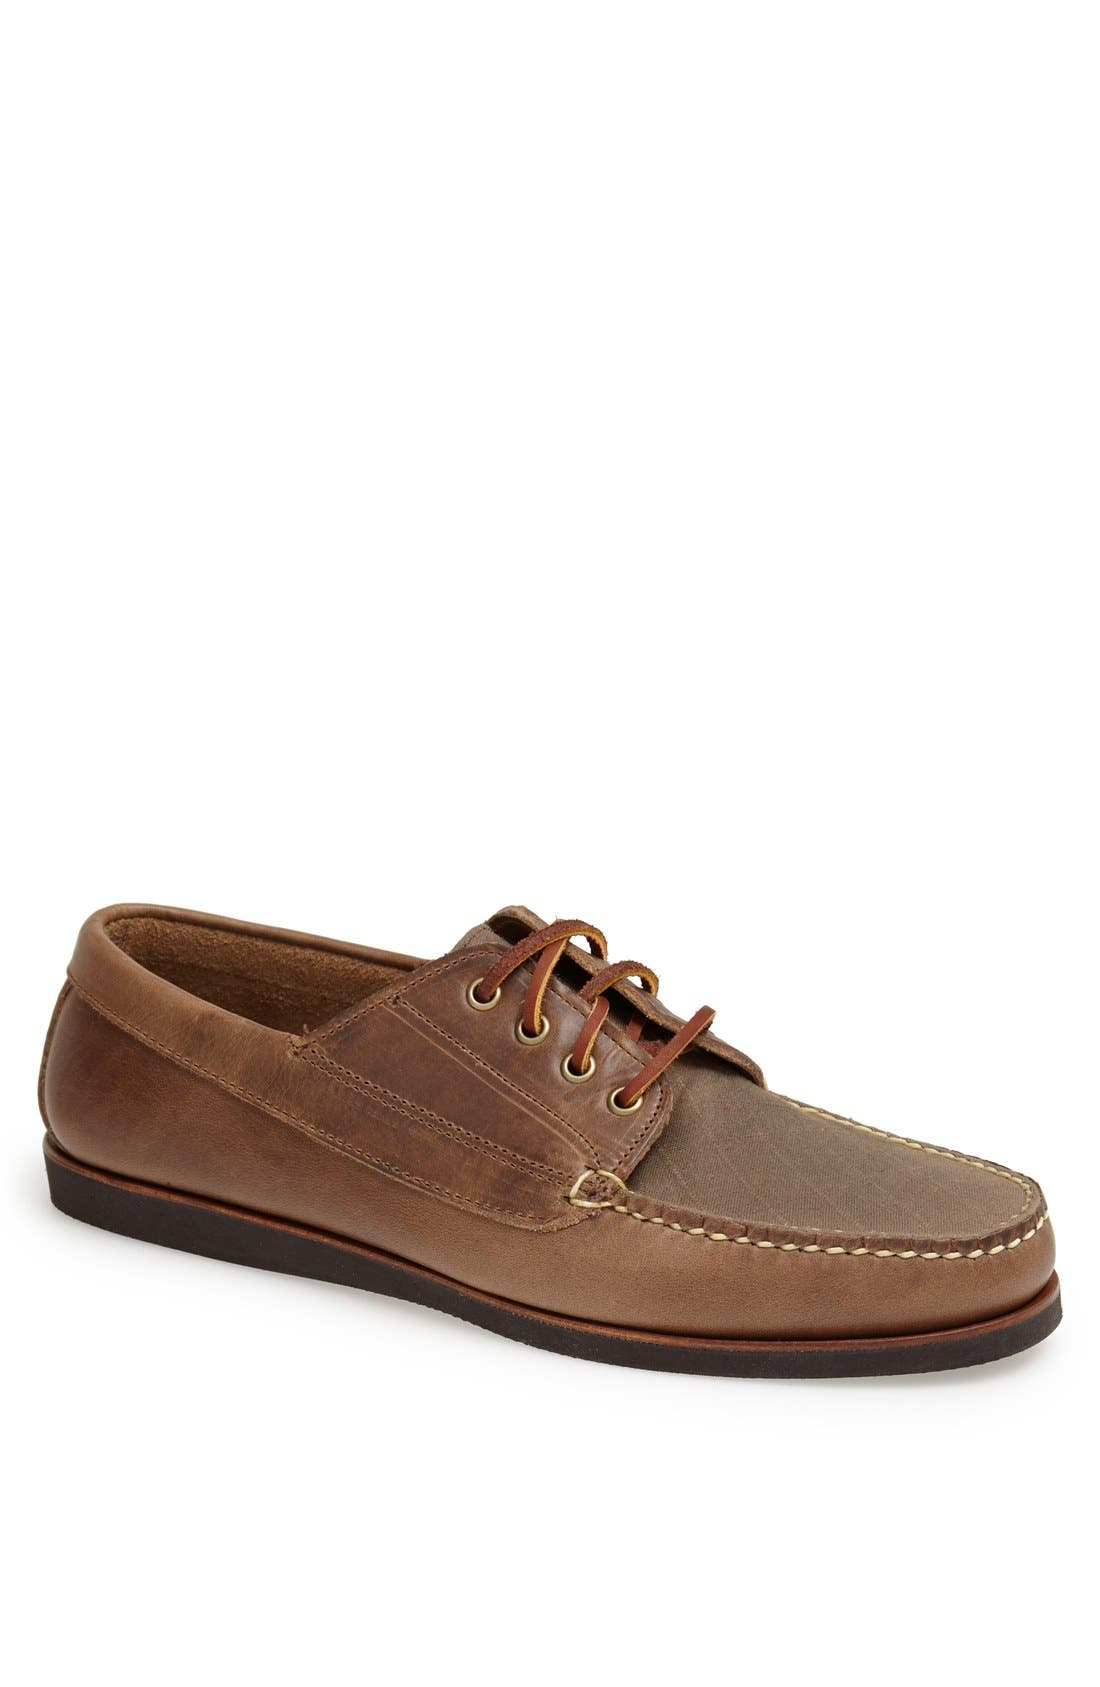 Alternate Image 1 Selected - Eastland Made in Maine 'Falmouth USA' Boat Shoe